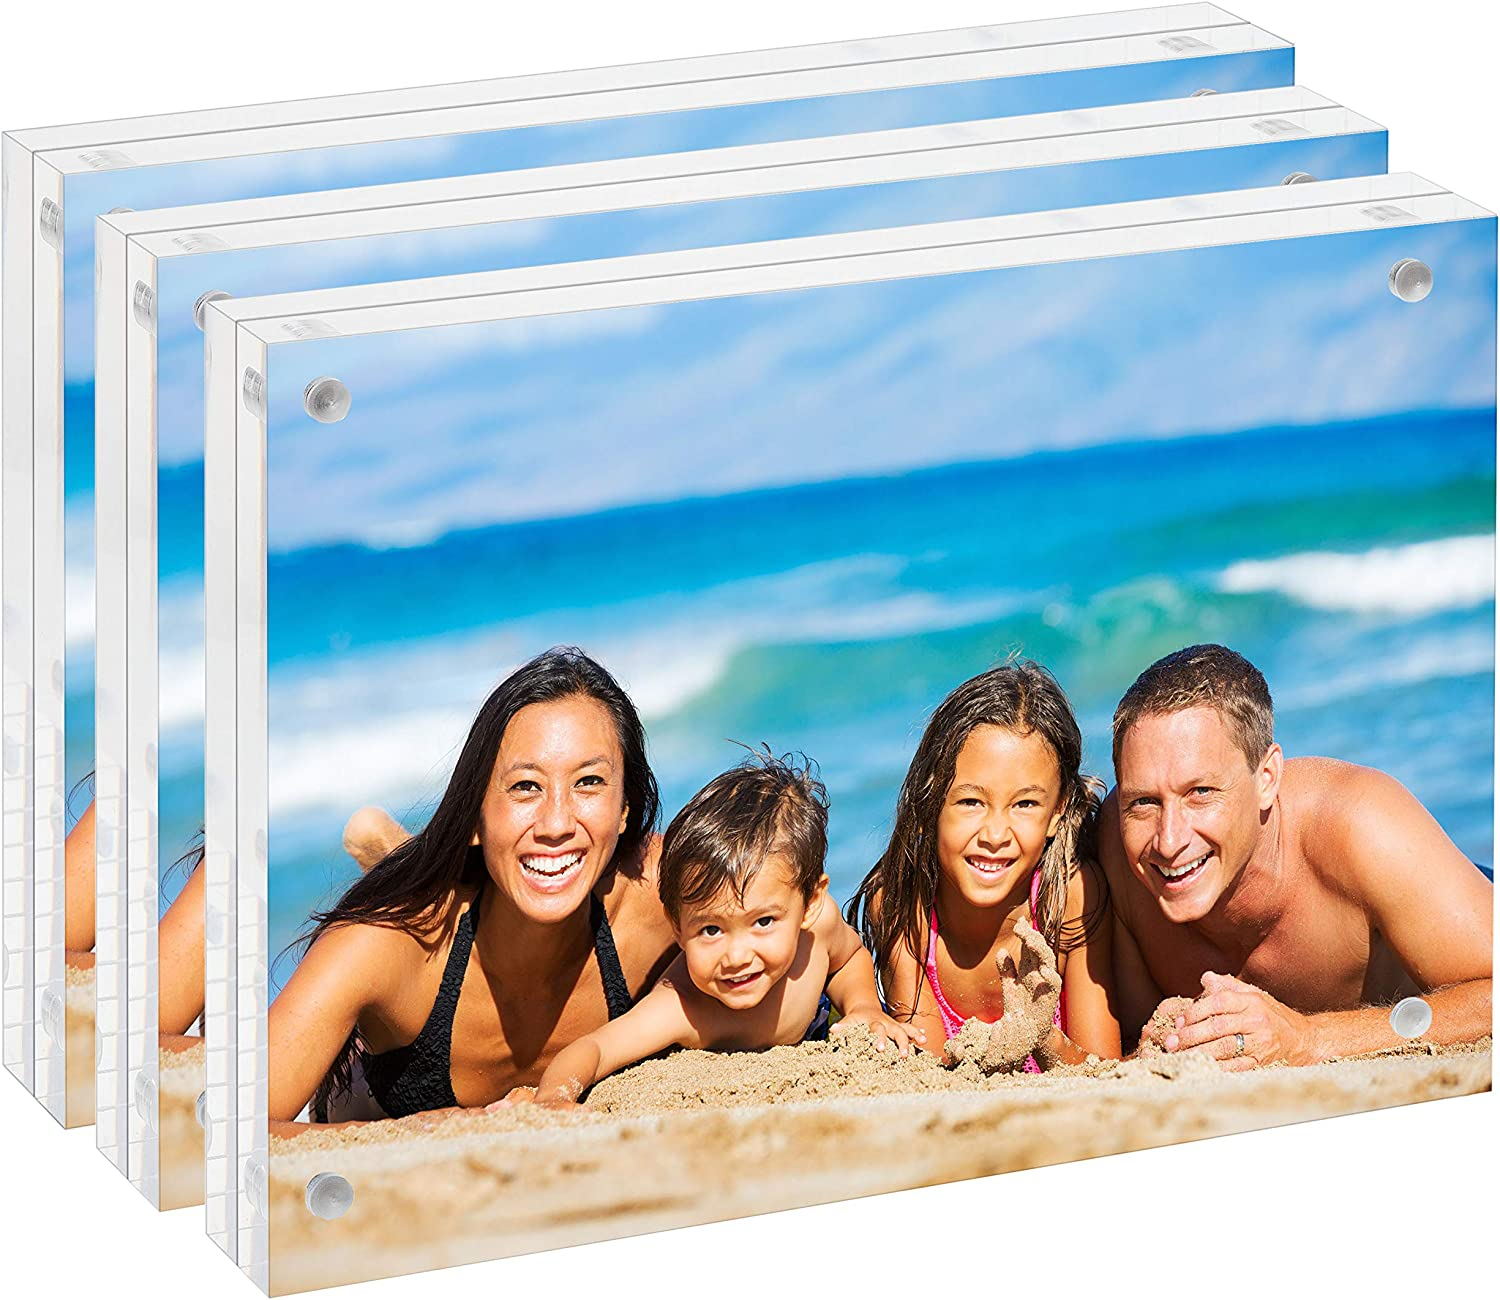 Clear Acrylic 4x6 Picture Frame: Unum Magnetic Floating Picture Frames / Photo Display Stands - Frameless Double Sided Photo Holder - 4 x 6 Inch Acrylic Block Frame for a Desk, Shelf or Table - 3 PACK